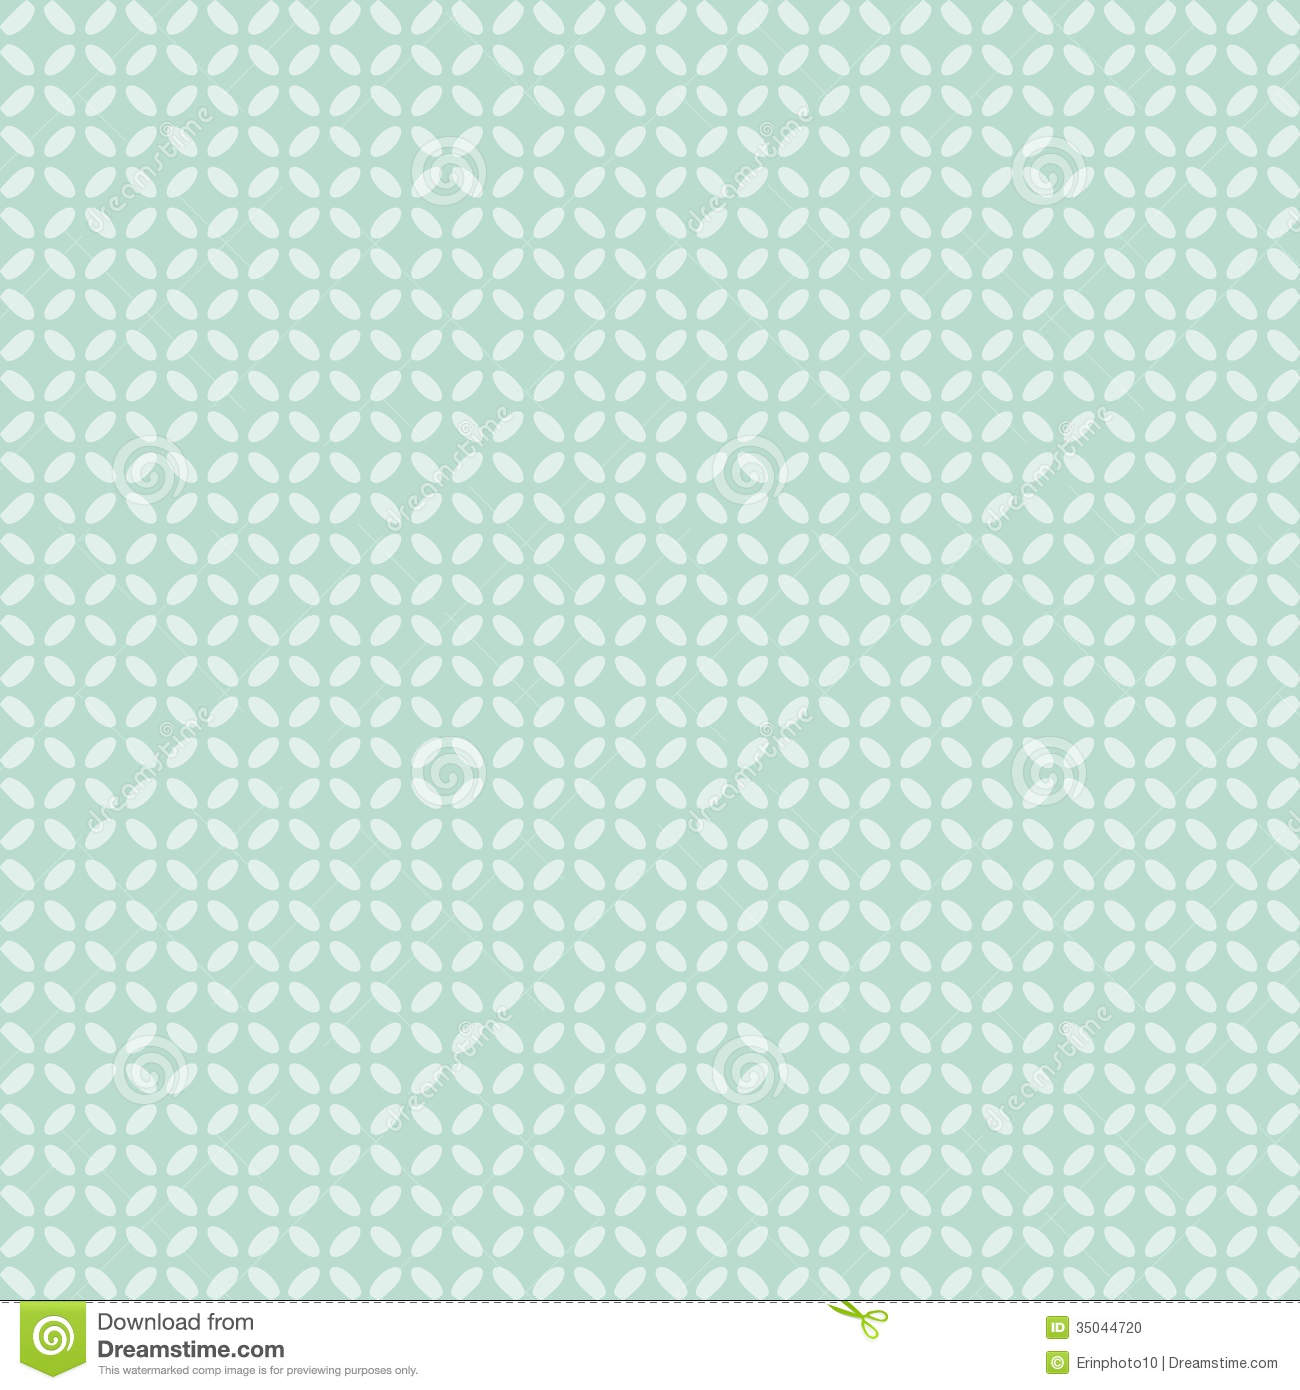 Simple Retro Background 9 Stock Vector. Illustration Of